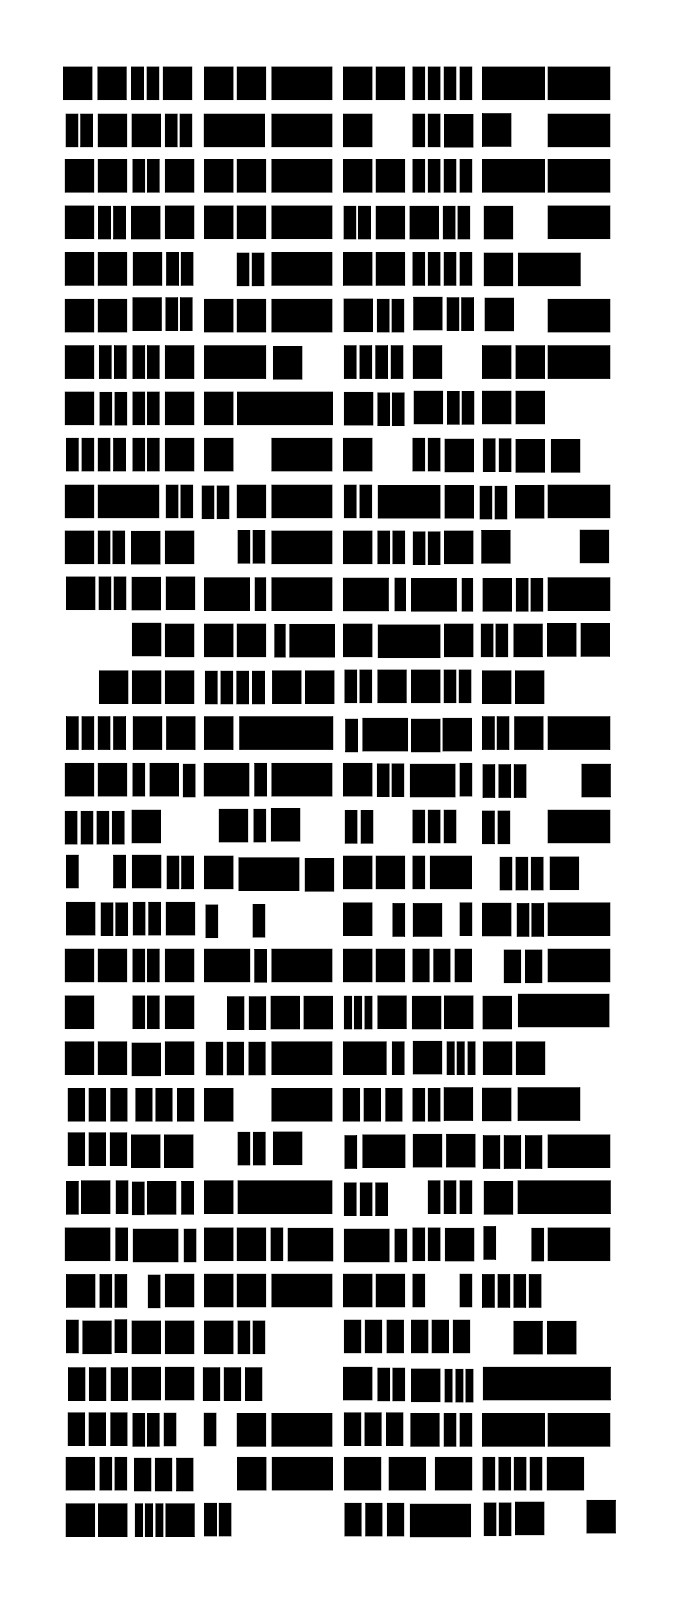 Dozens of rows of rhythmic patterns represented by black squares, rectangles, and negative space.